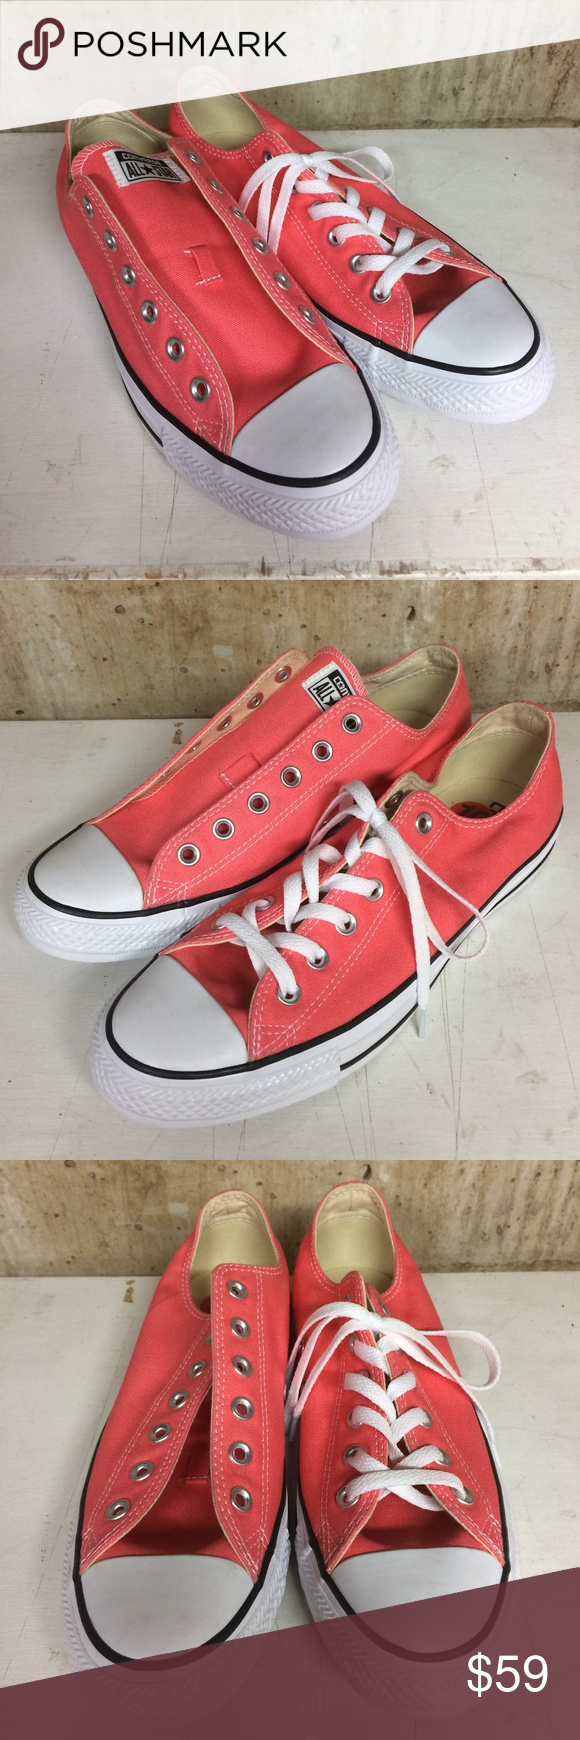 Converse Men's 8 Women's 10 Shoes Carnival Pink Super cool